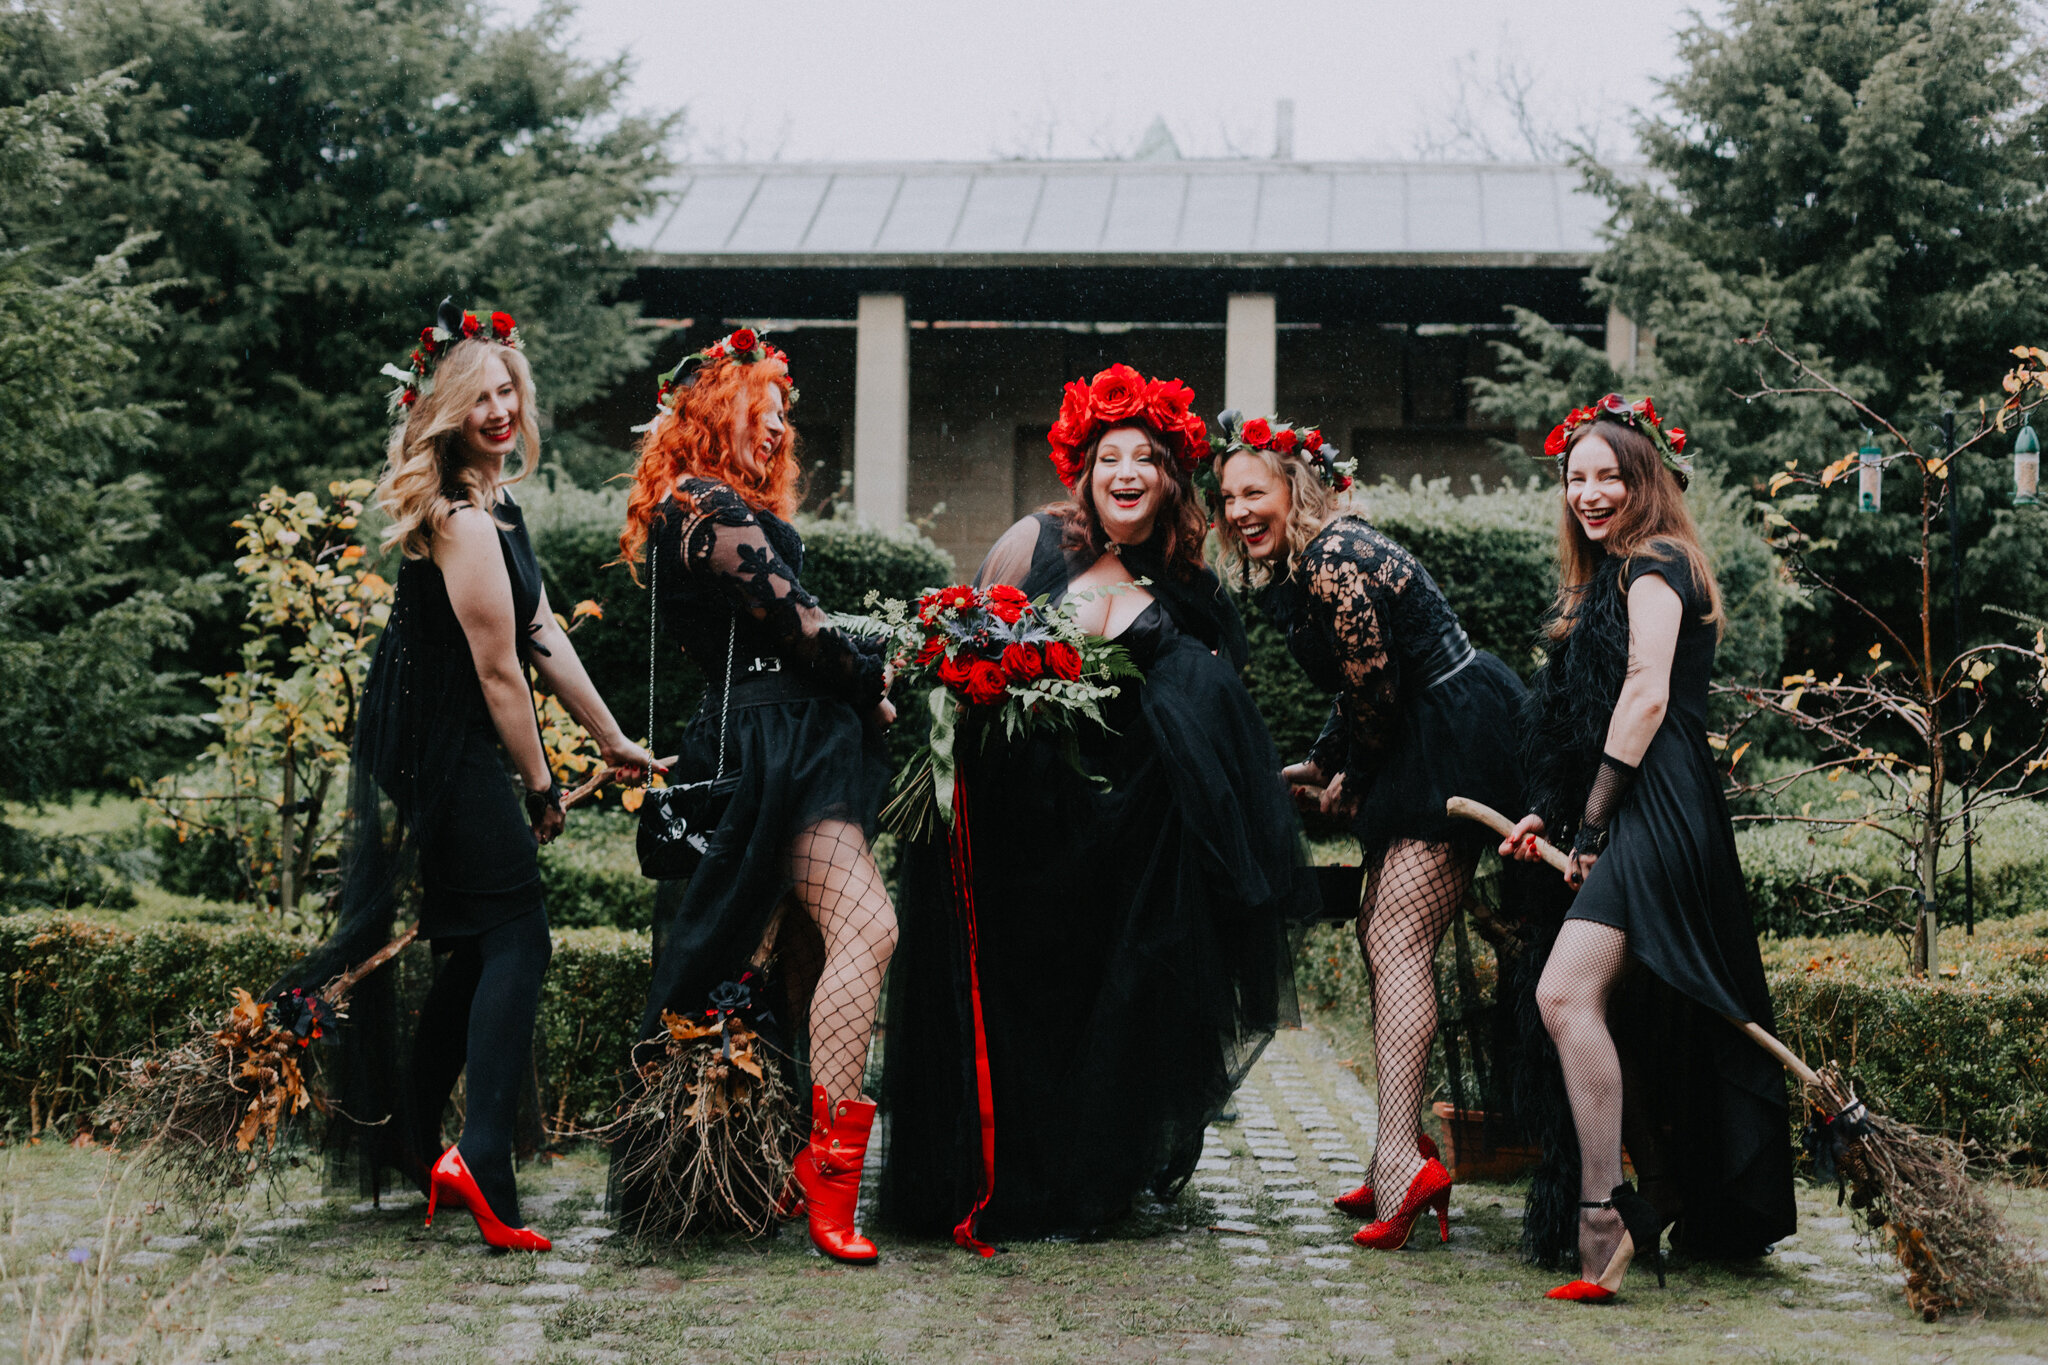 The Halloween bridal party is having a fun time together